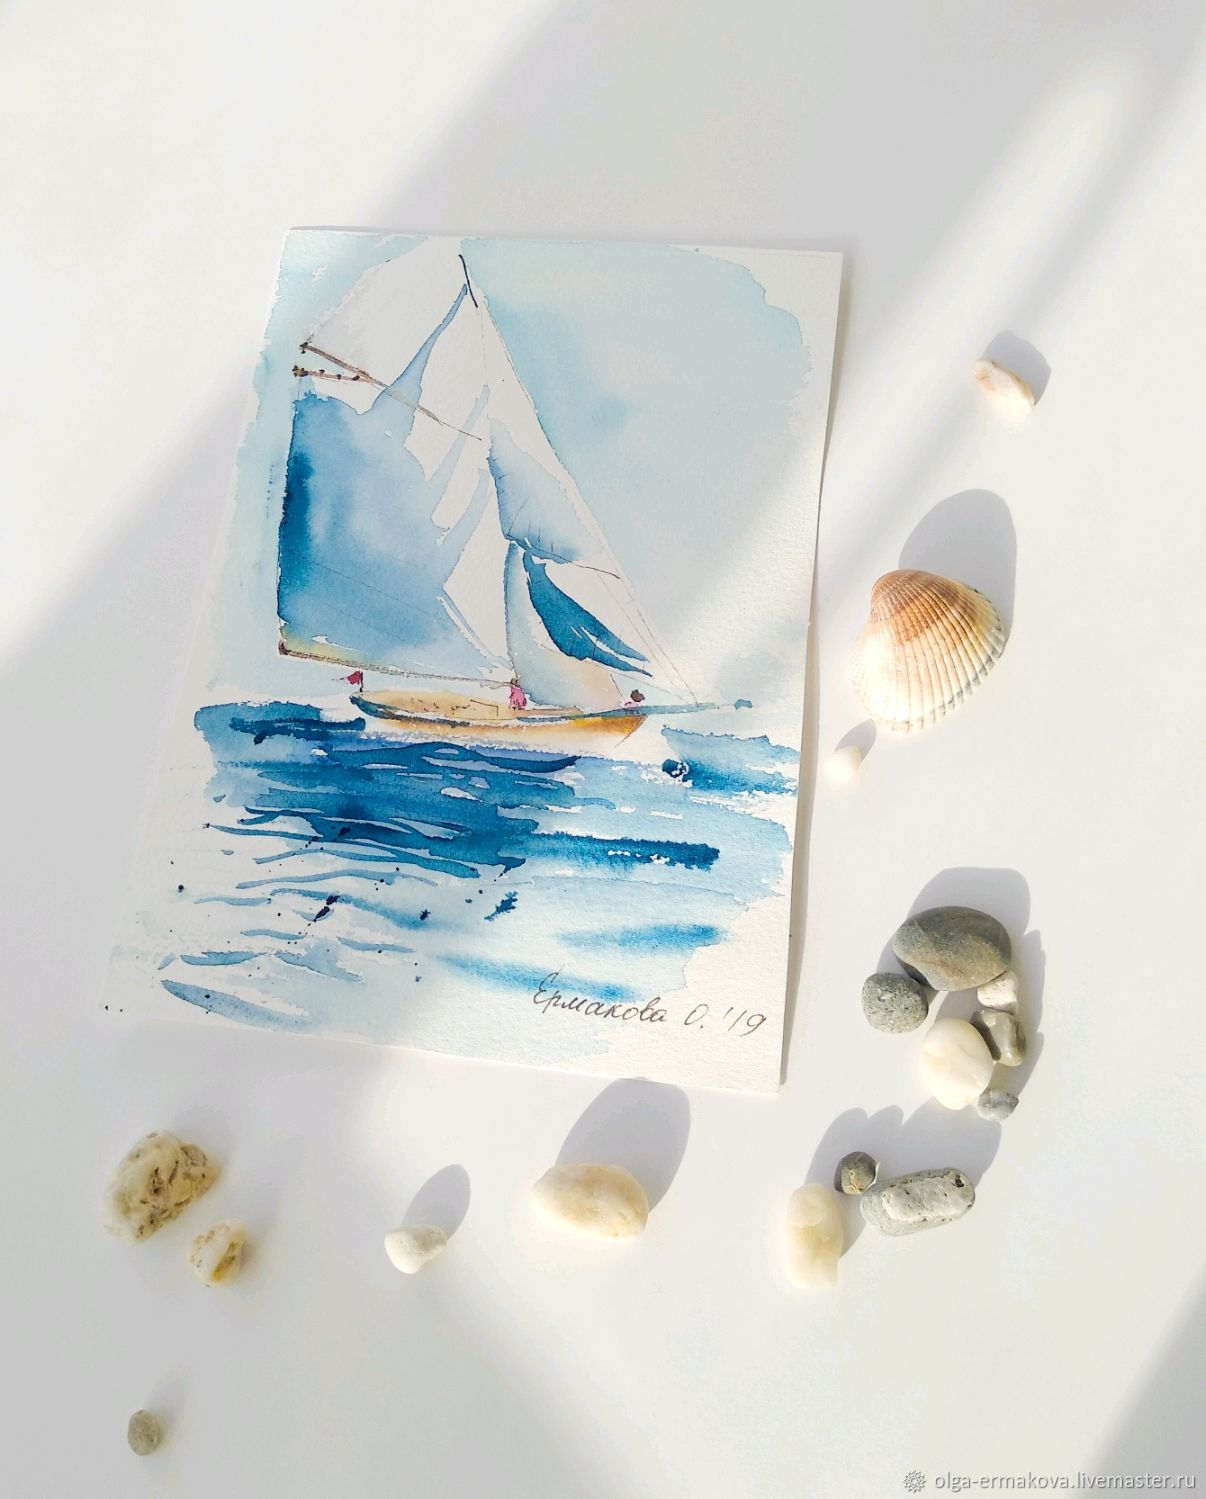 Sea painting with a yacht watercolor in the hallway or in the office office, Pictures, Moscow,  Фото №1